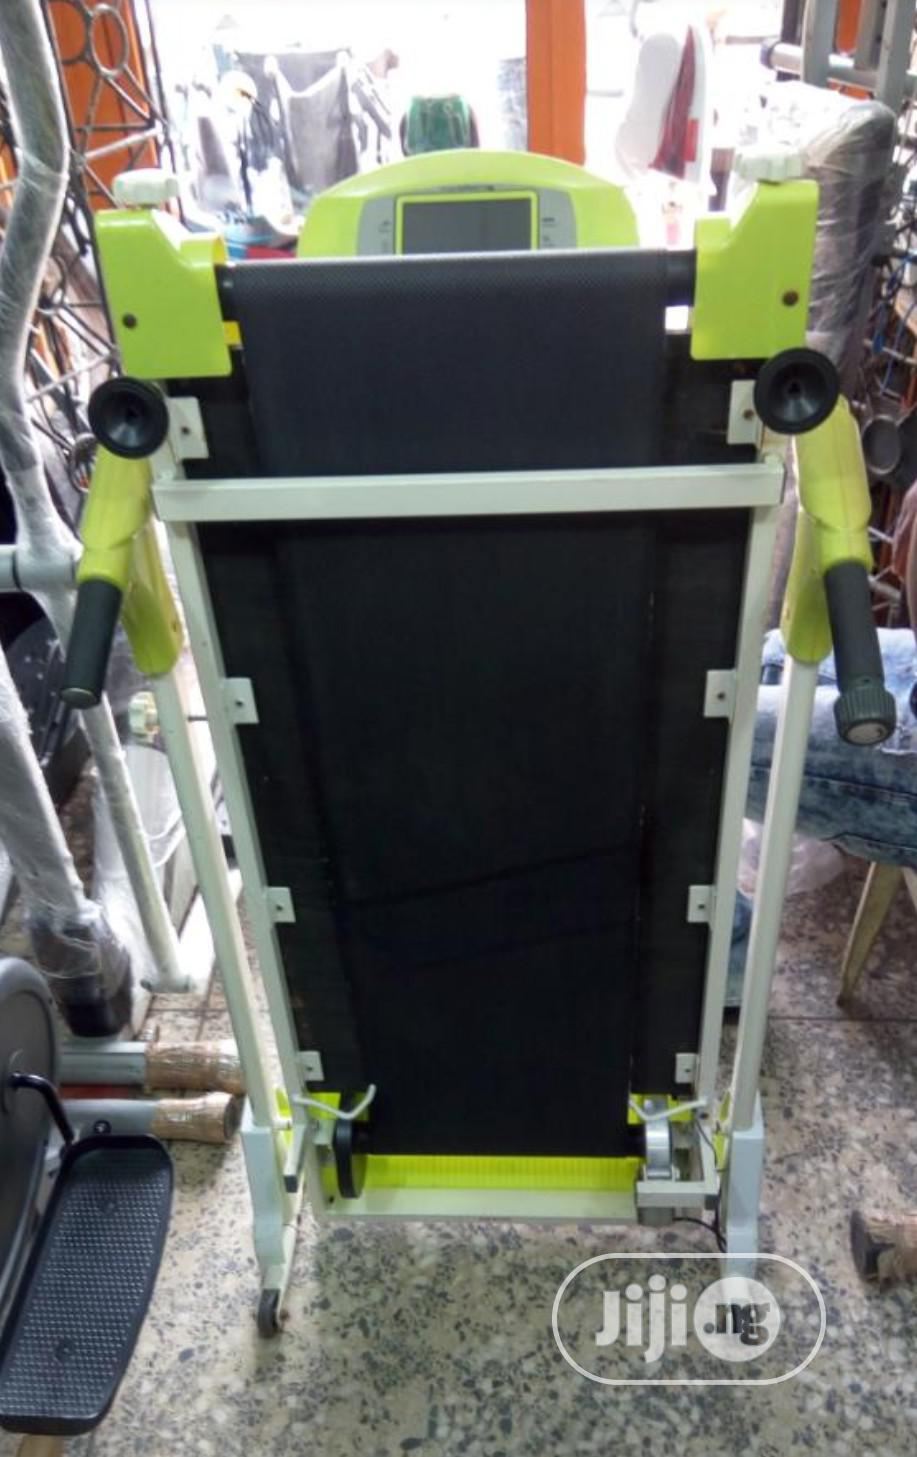 I-Walking Manual Treadmill | Sports Equipment for sale in Surulere, Lagos State, Nigeria